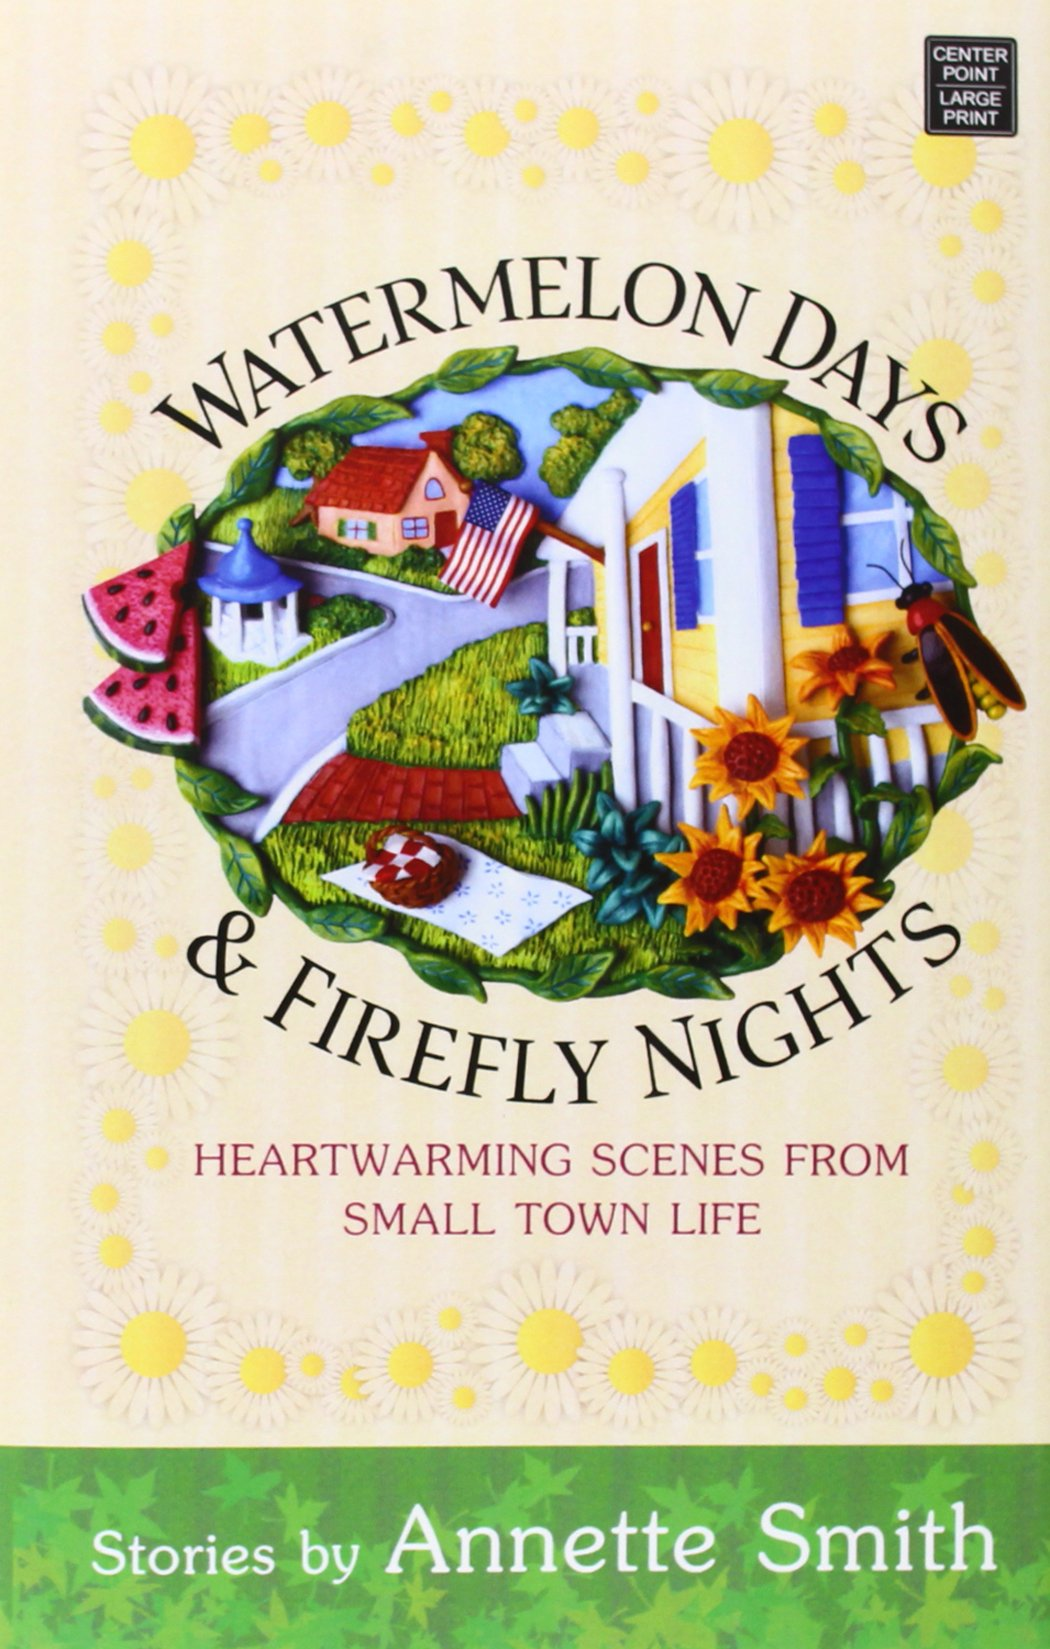 Watermelon Days & Firefly Nights: Heartwarming Scenes from Small Town Life:  Annette Smith: 9781628992045: Amazon.com: Books